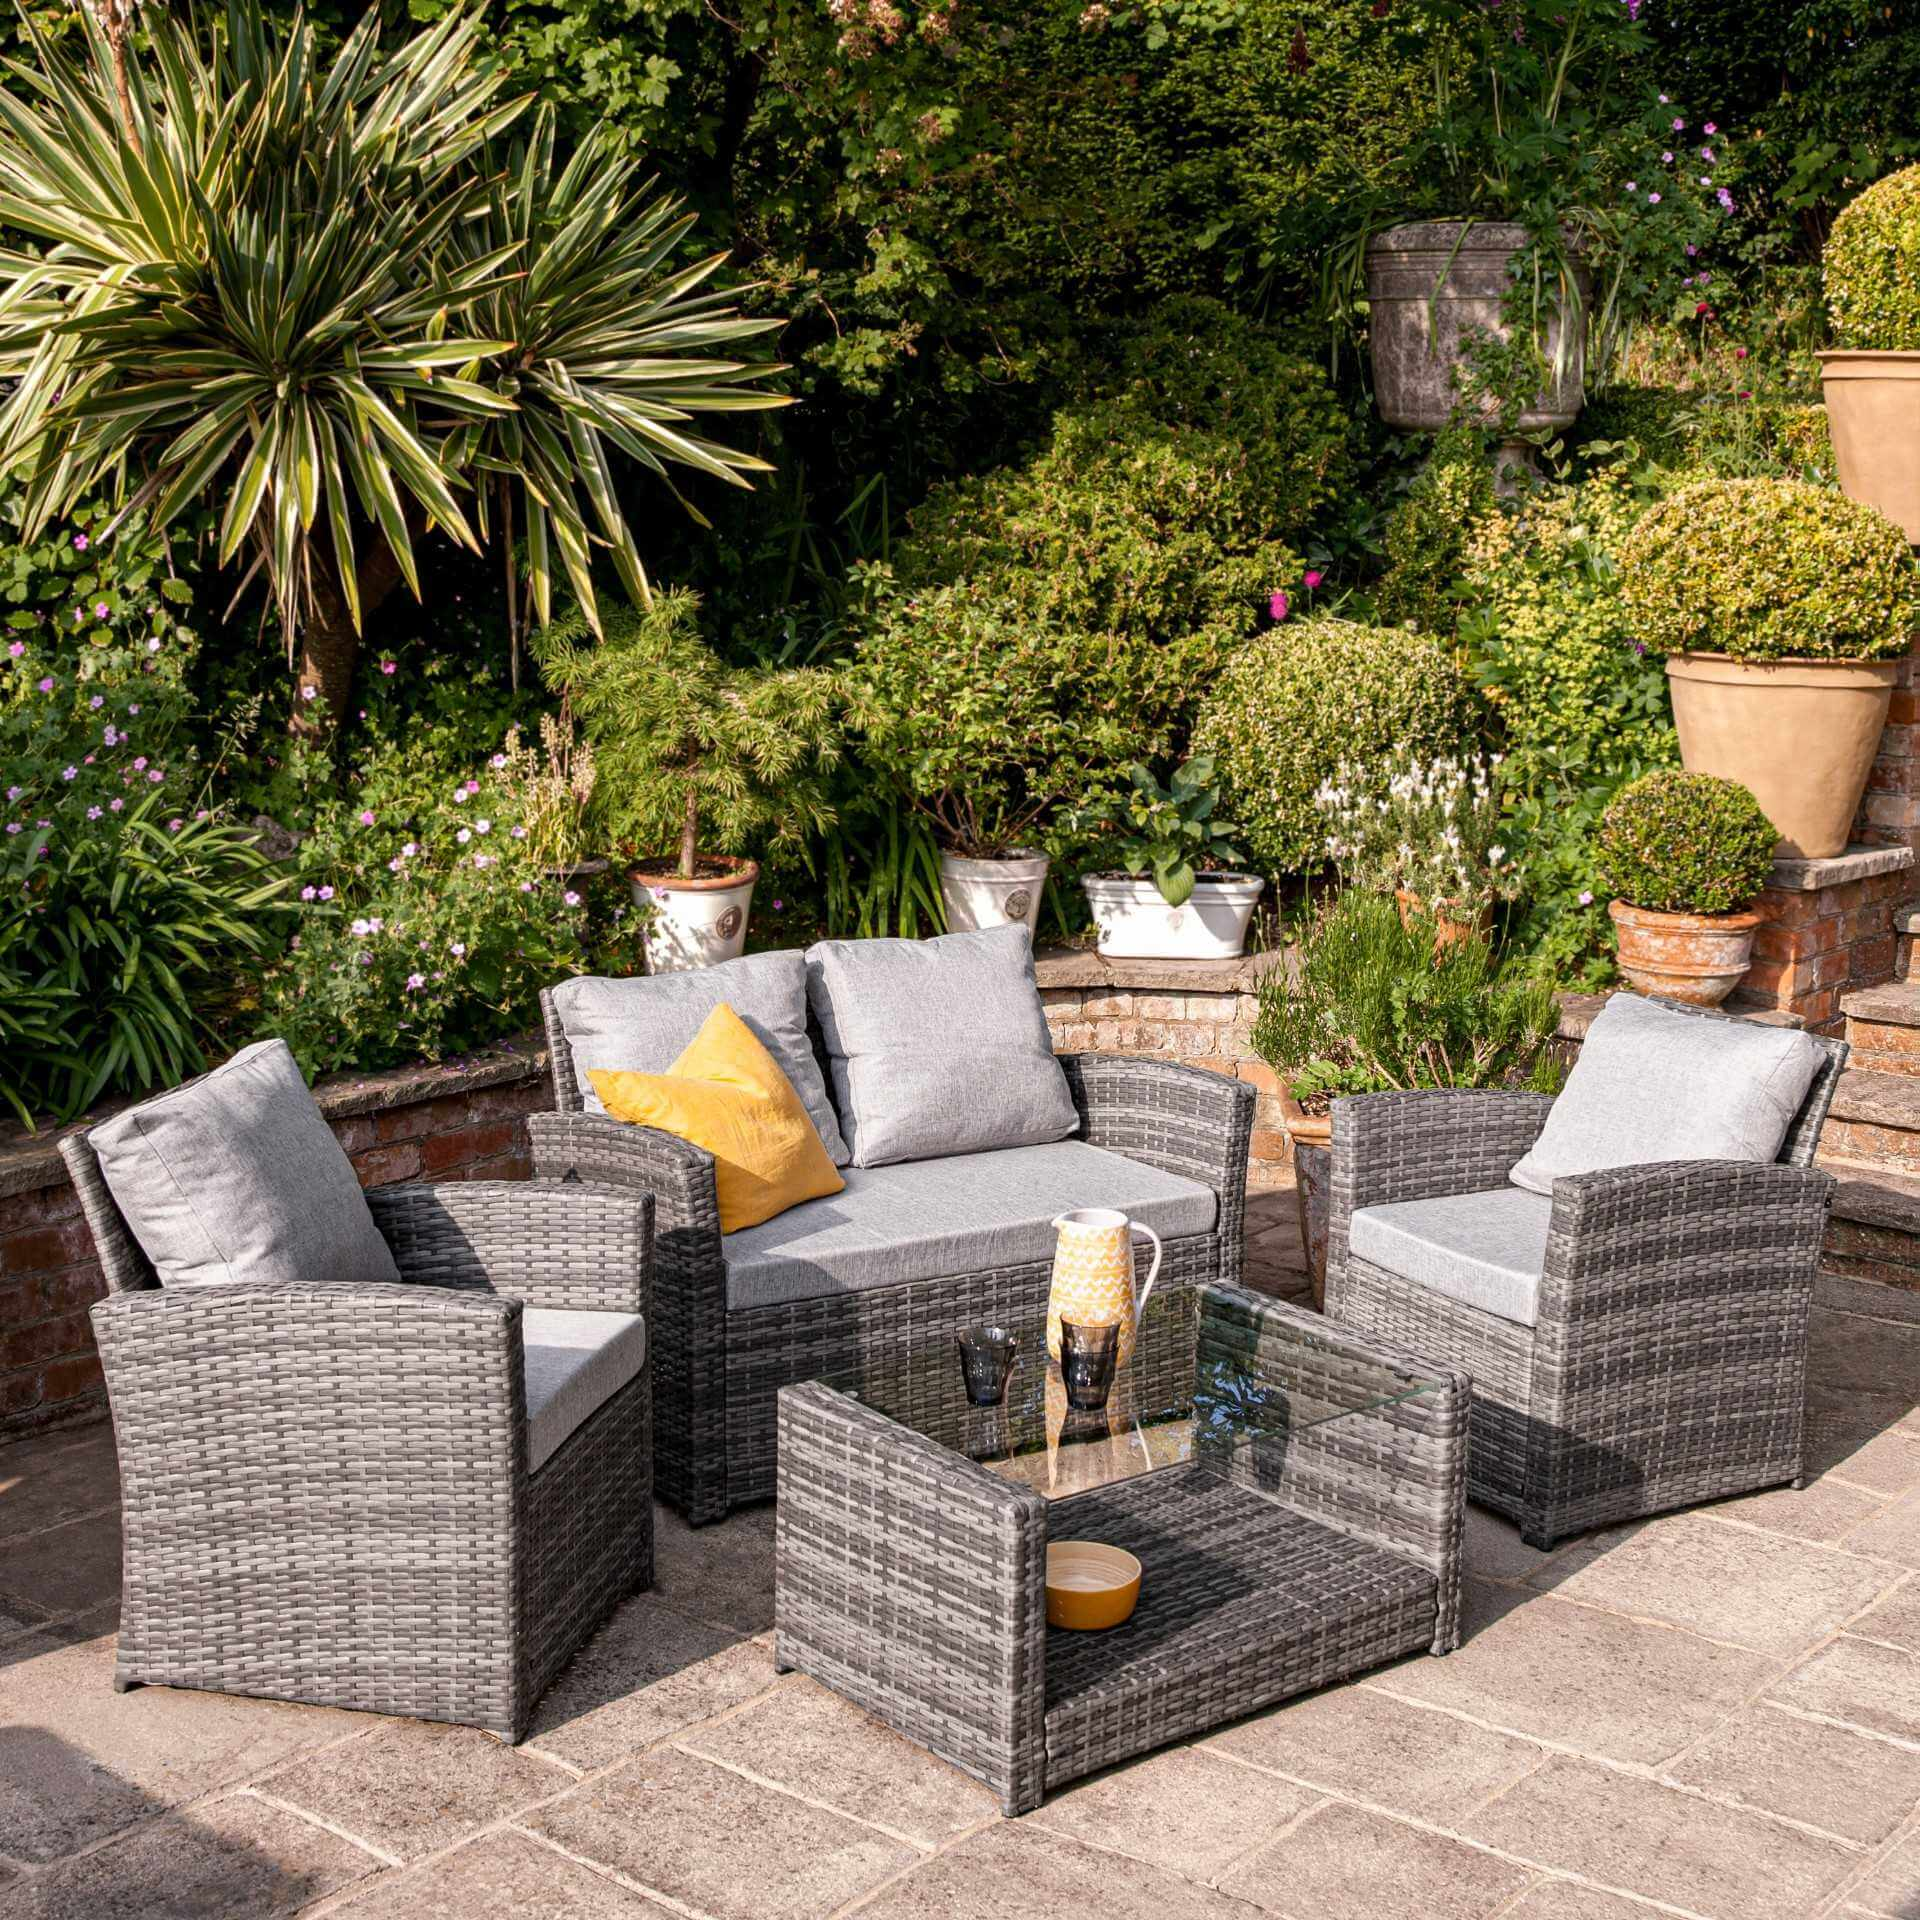 Rattan Garden Sofa Set - 4 Seater - Grey Weave